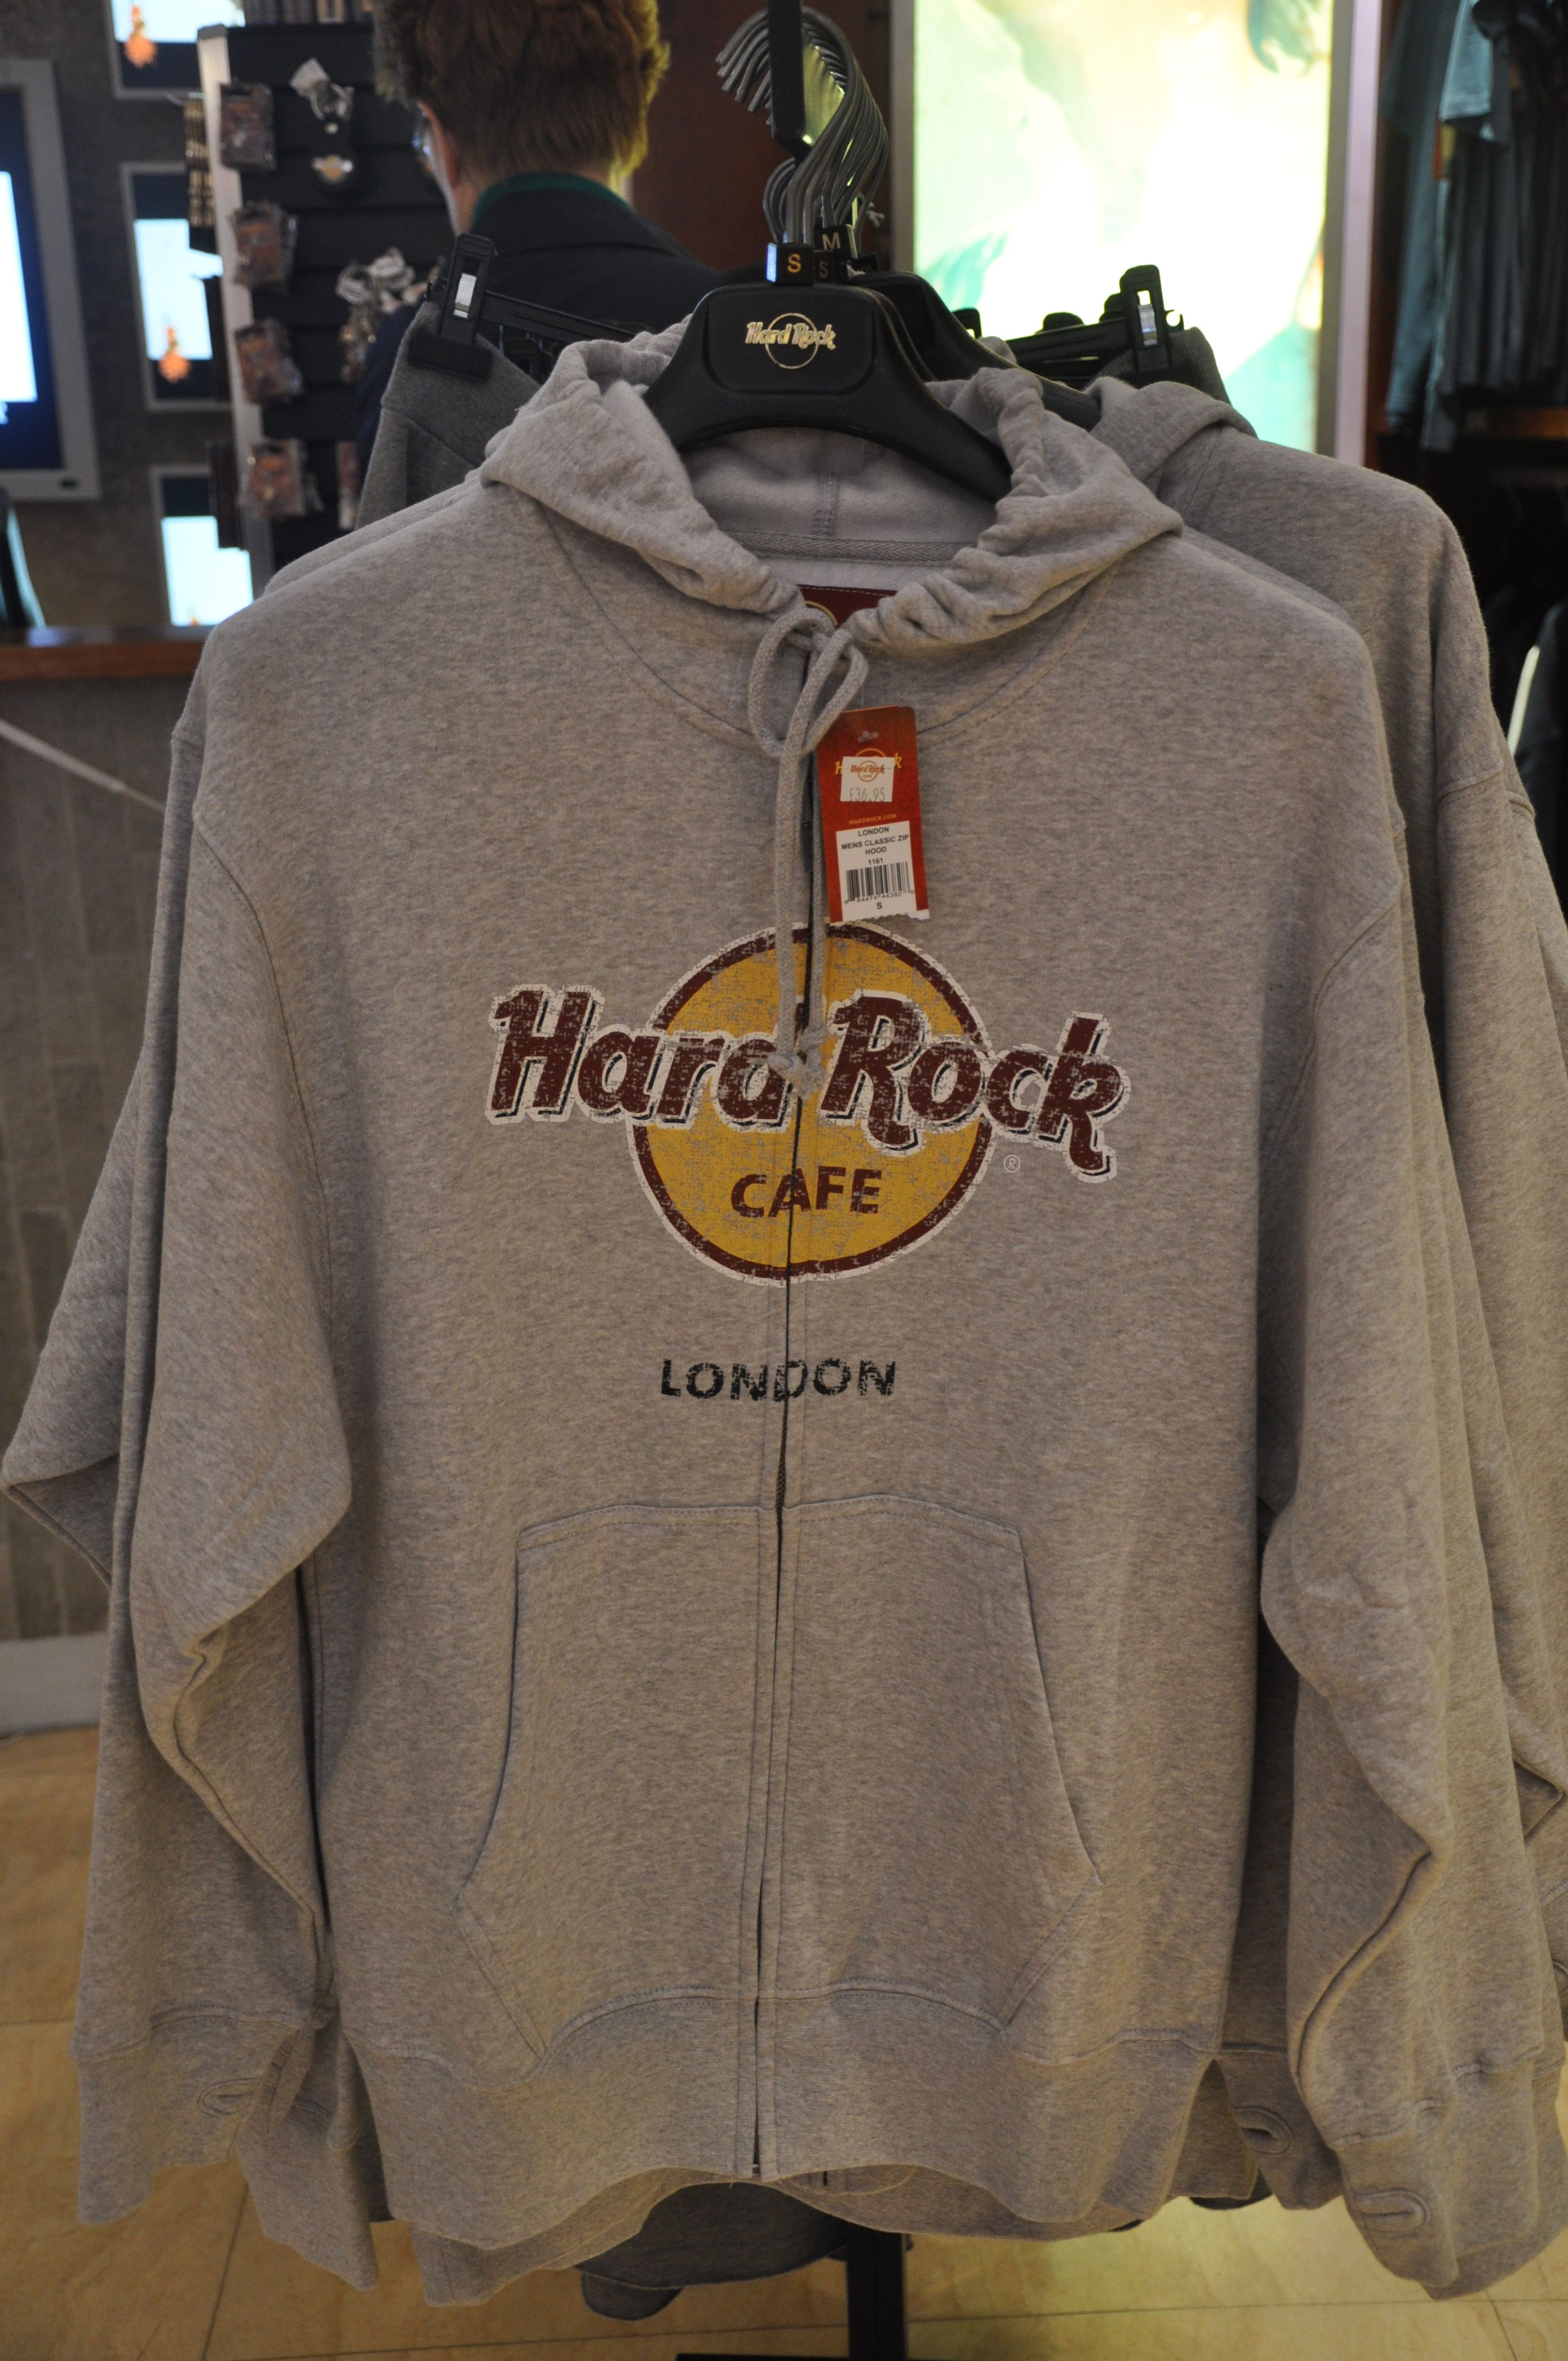 Hard Rock Cafe London Hoodie